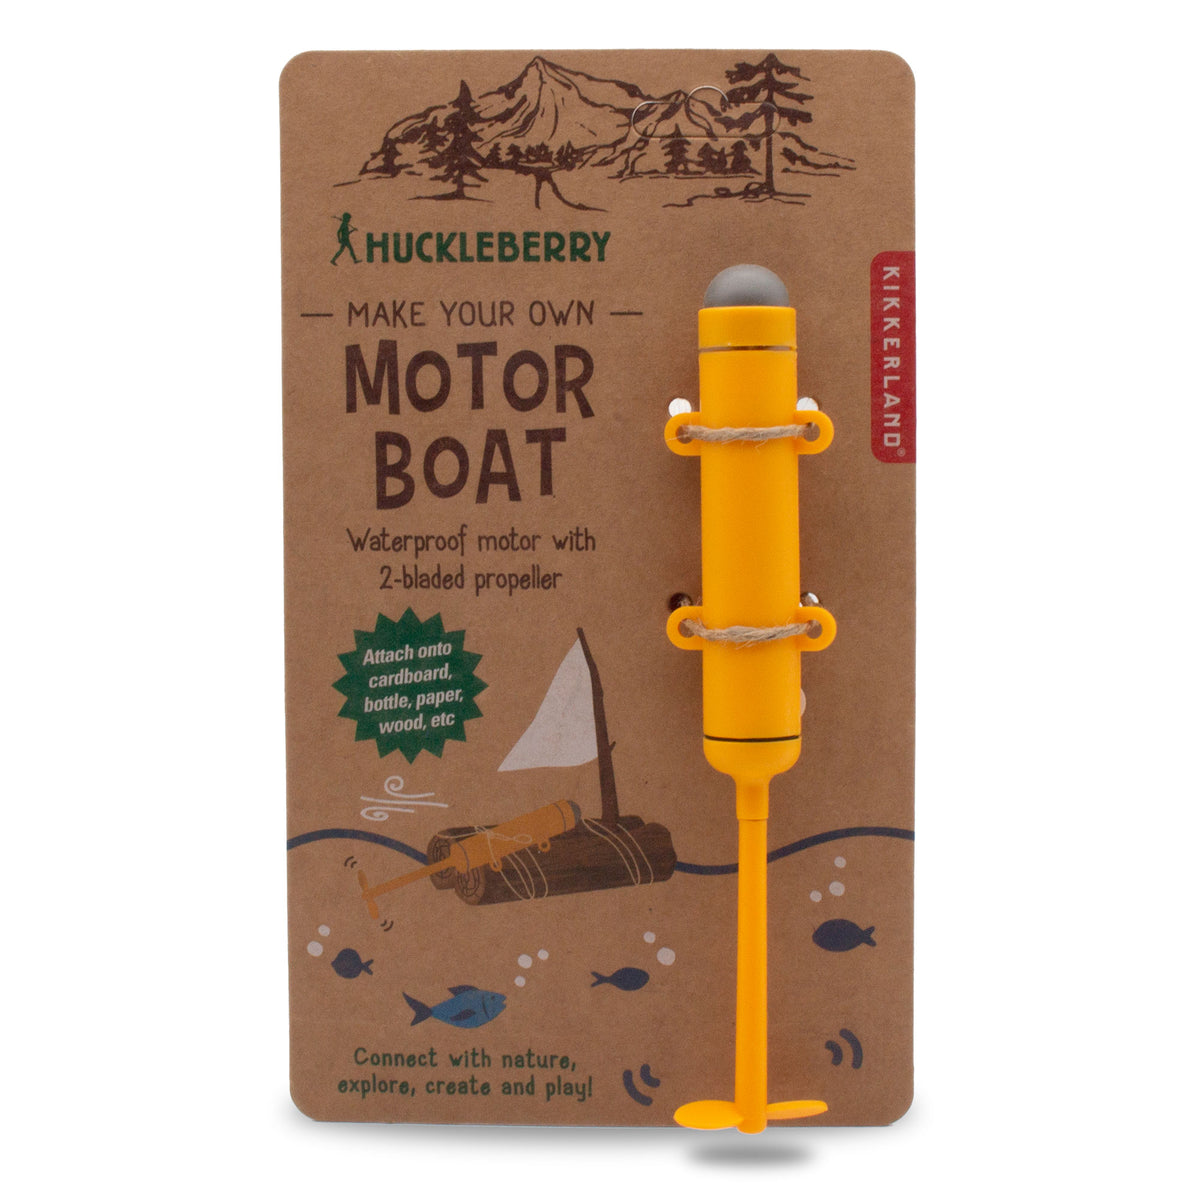 Huckleberry Motorboat Kit